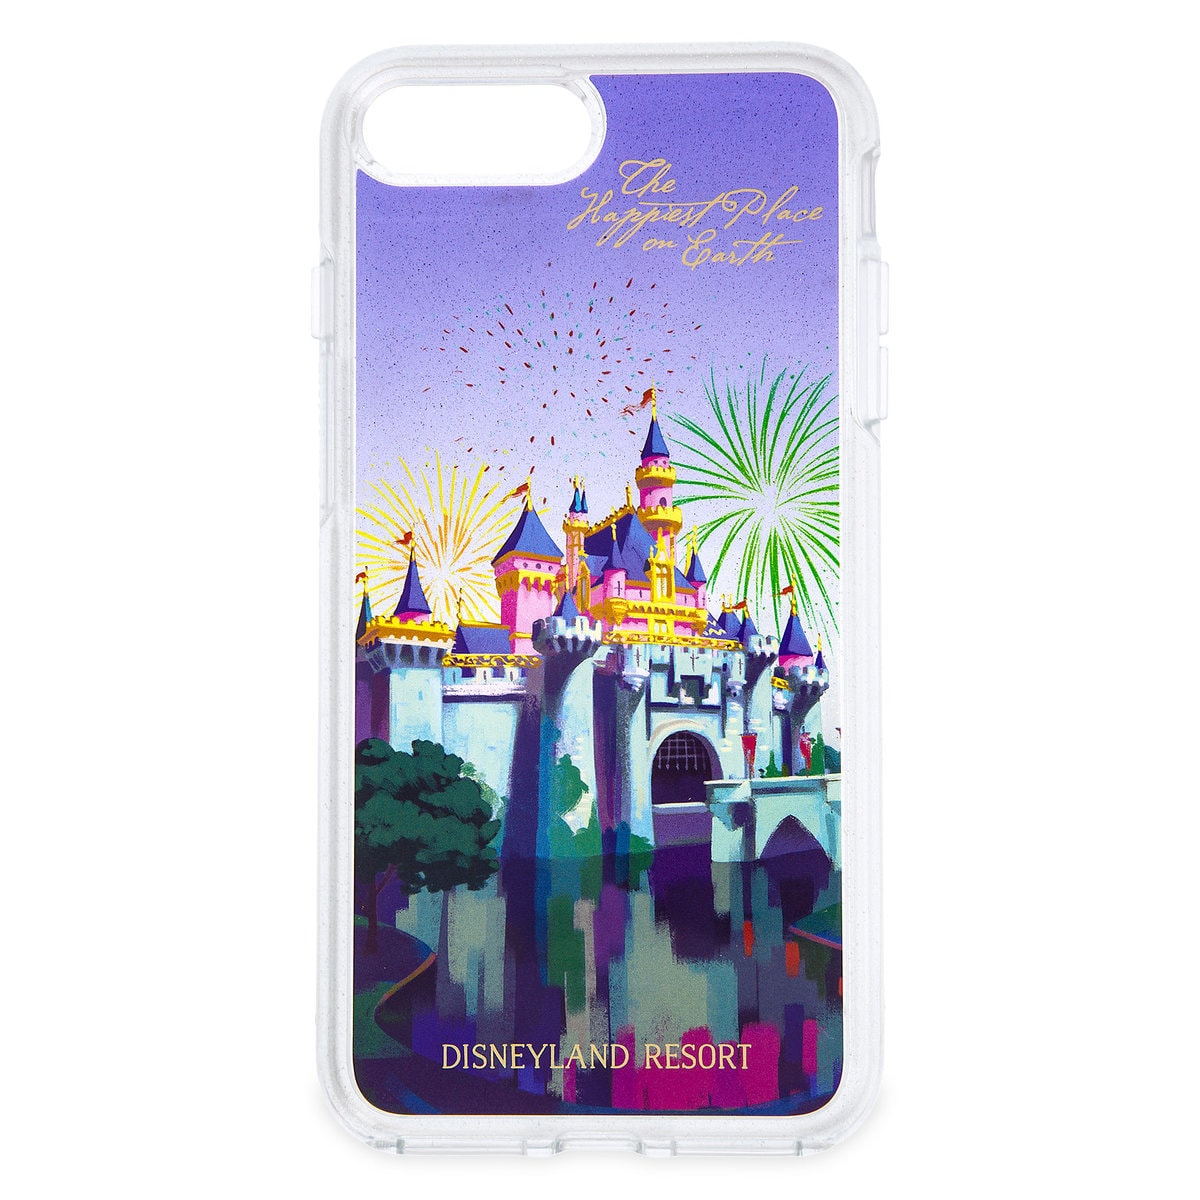 huge discount c7344 ee4fa Sleeping Beauty Castle iPhone 8 Plus/7 Plus Case by OtterBox - Disneyland